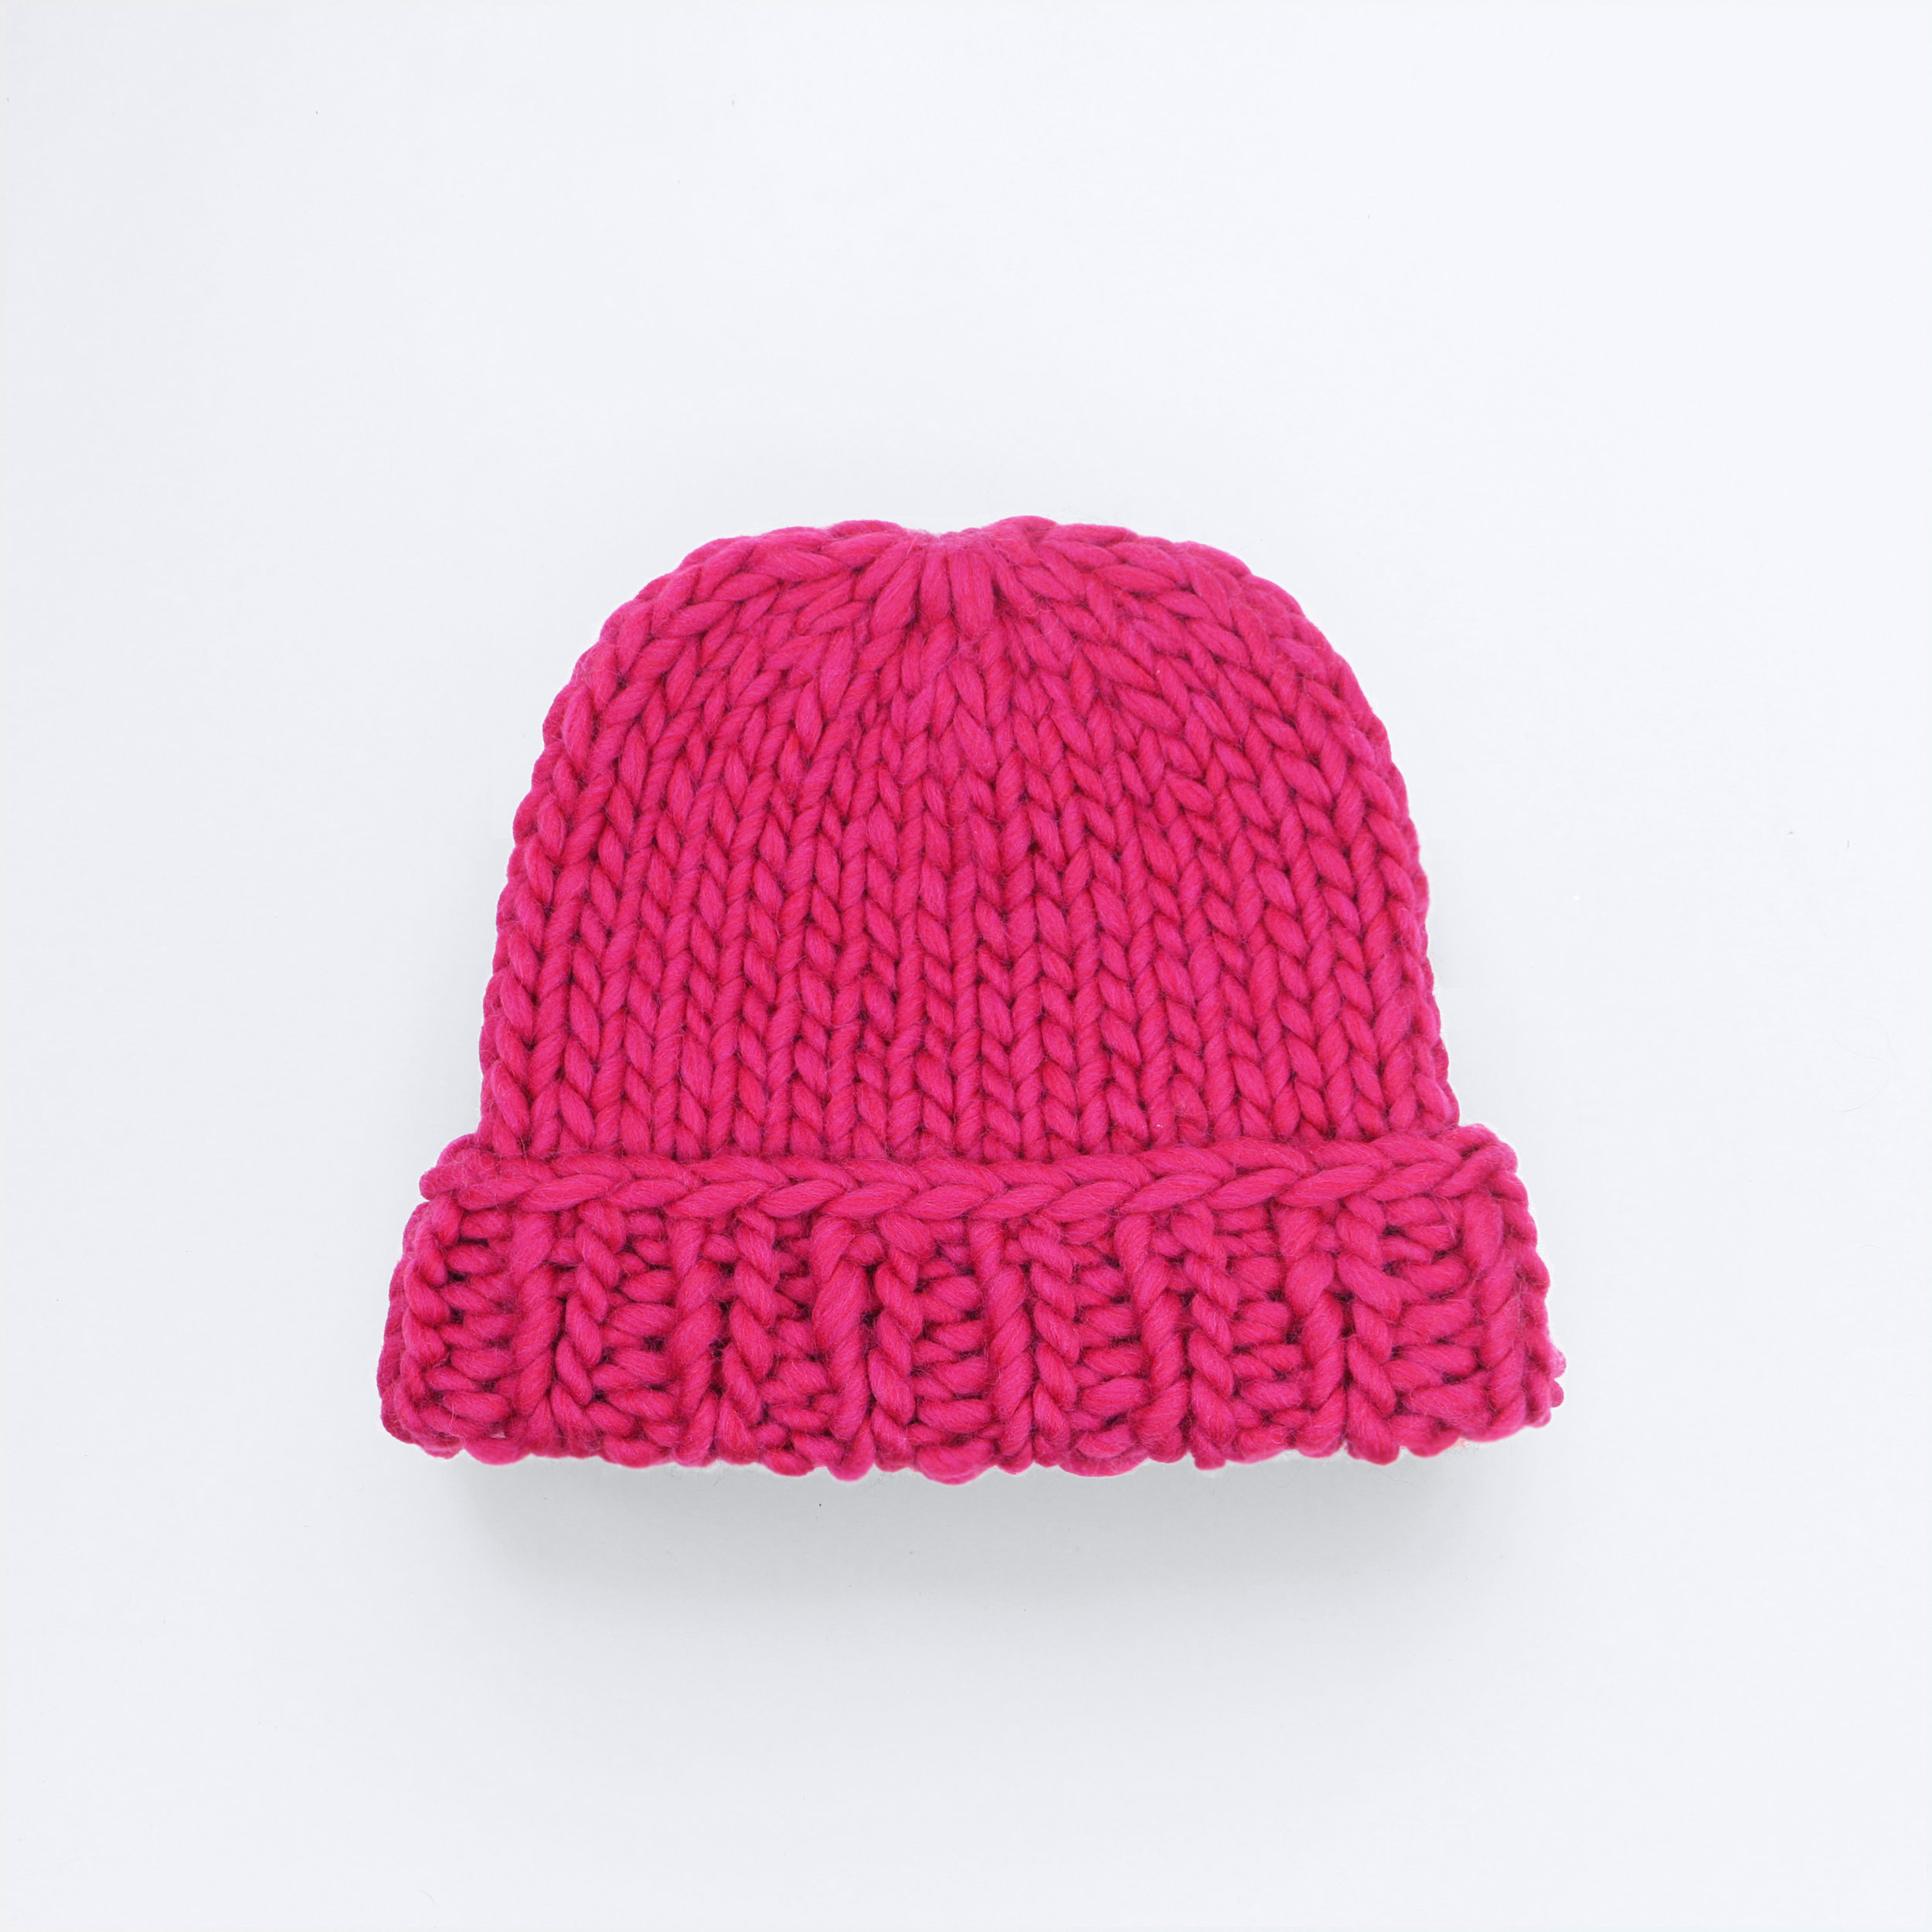 MAKE IT BIG BEANIE - Hot pink